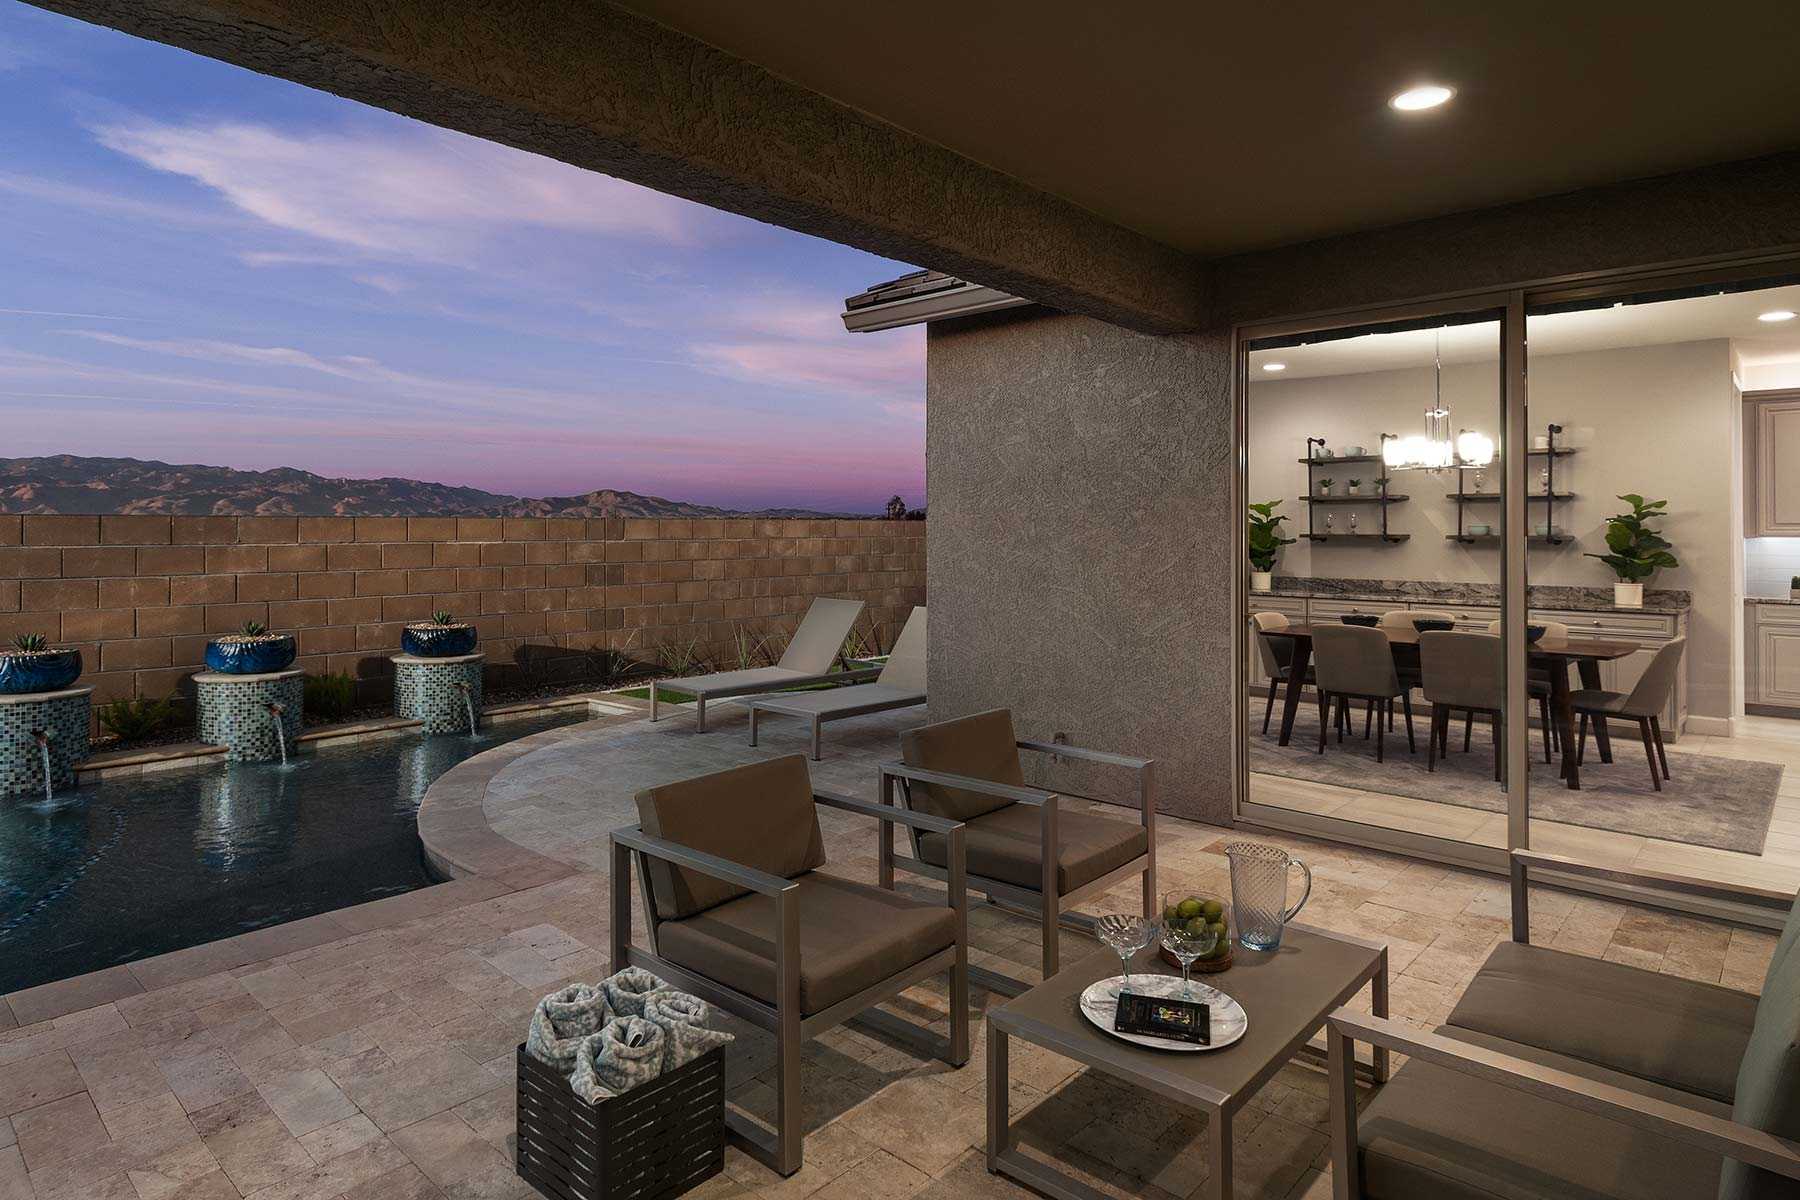 Echo Plan Exterior Others at Saguaro Trails in Tucson Arizona by Mattamy Homes